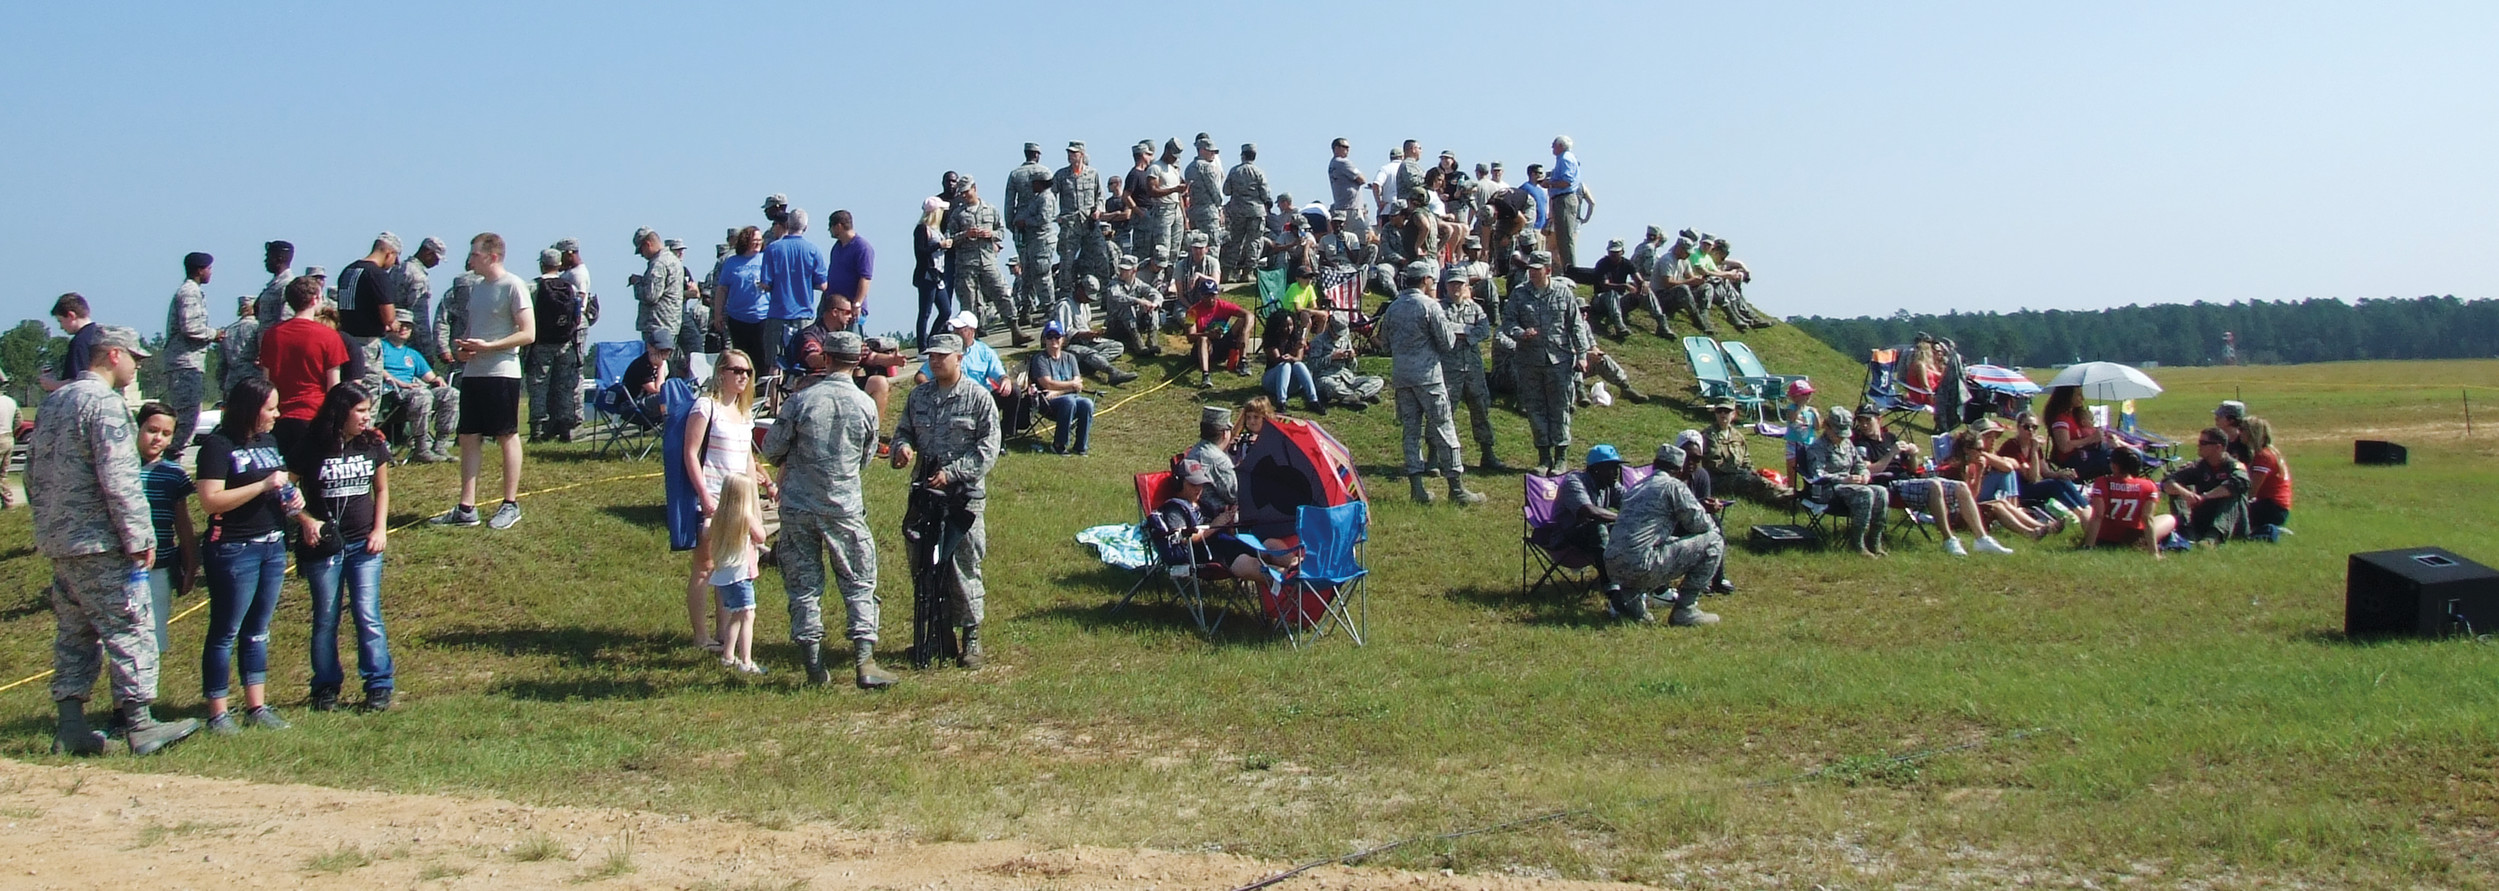 "About 400 people, many of them friends and family of the 77th Fighter ""Gambler"" Squadron at Shaw Air Force Base, came out to the squadron's ""Range Day"" demonstration at Poinsett Electronic Combat Range near Pinewood on Friday for air-to-ground and air-to-air combat simulations."